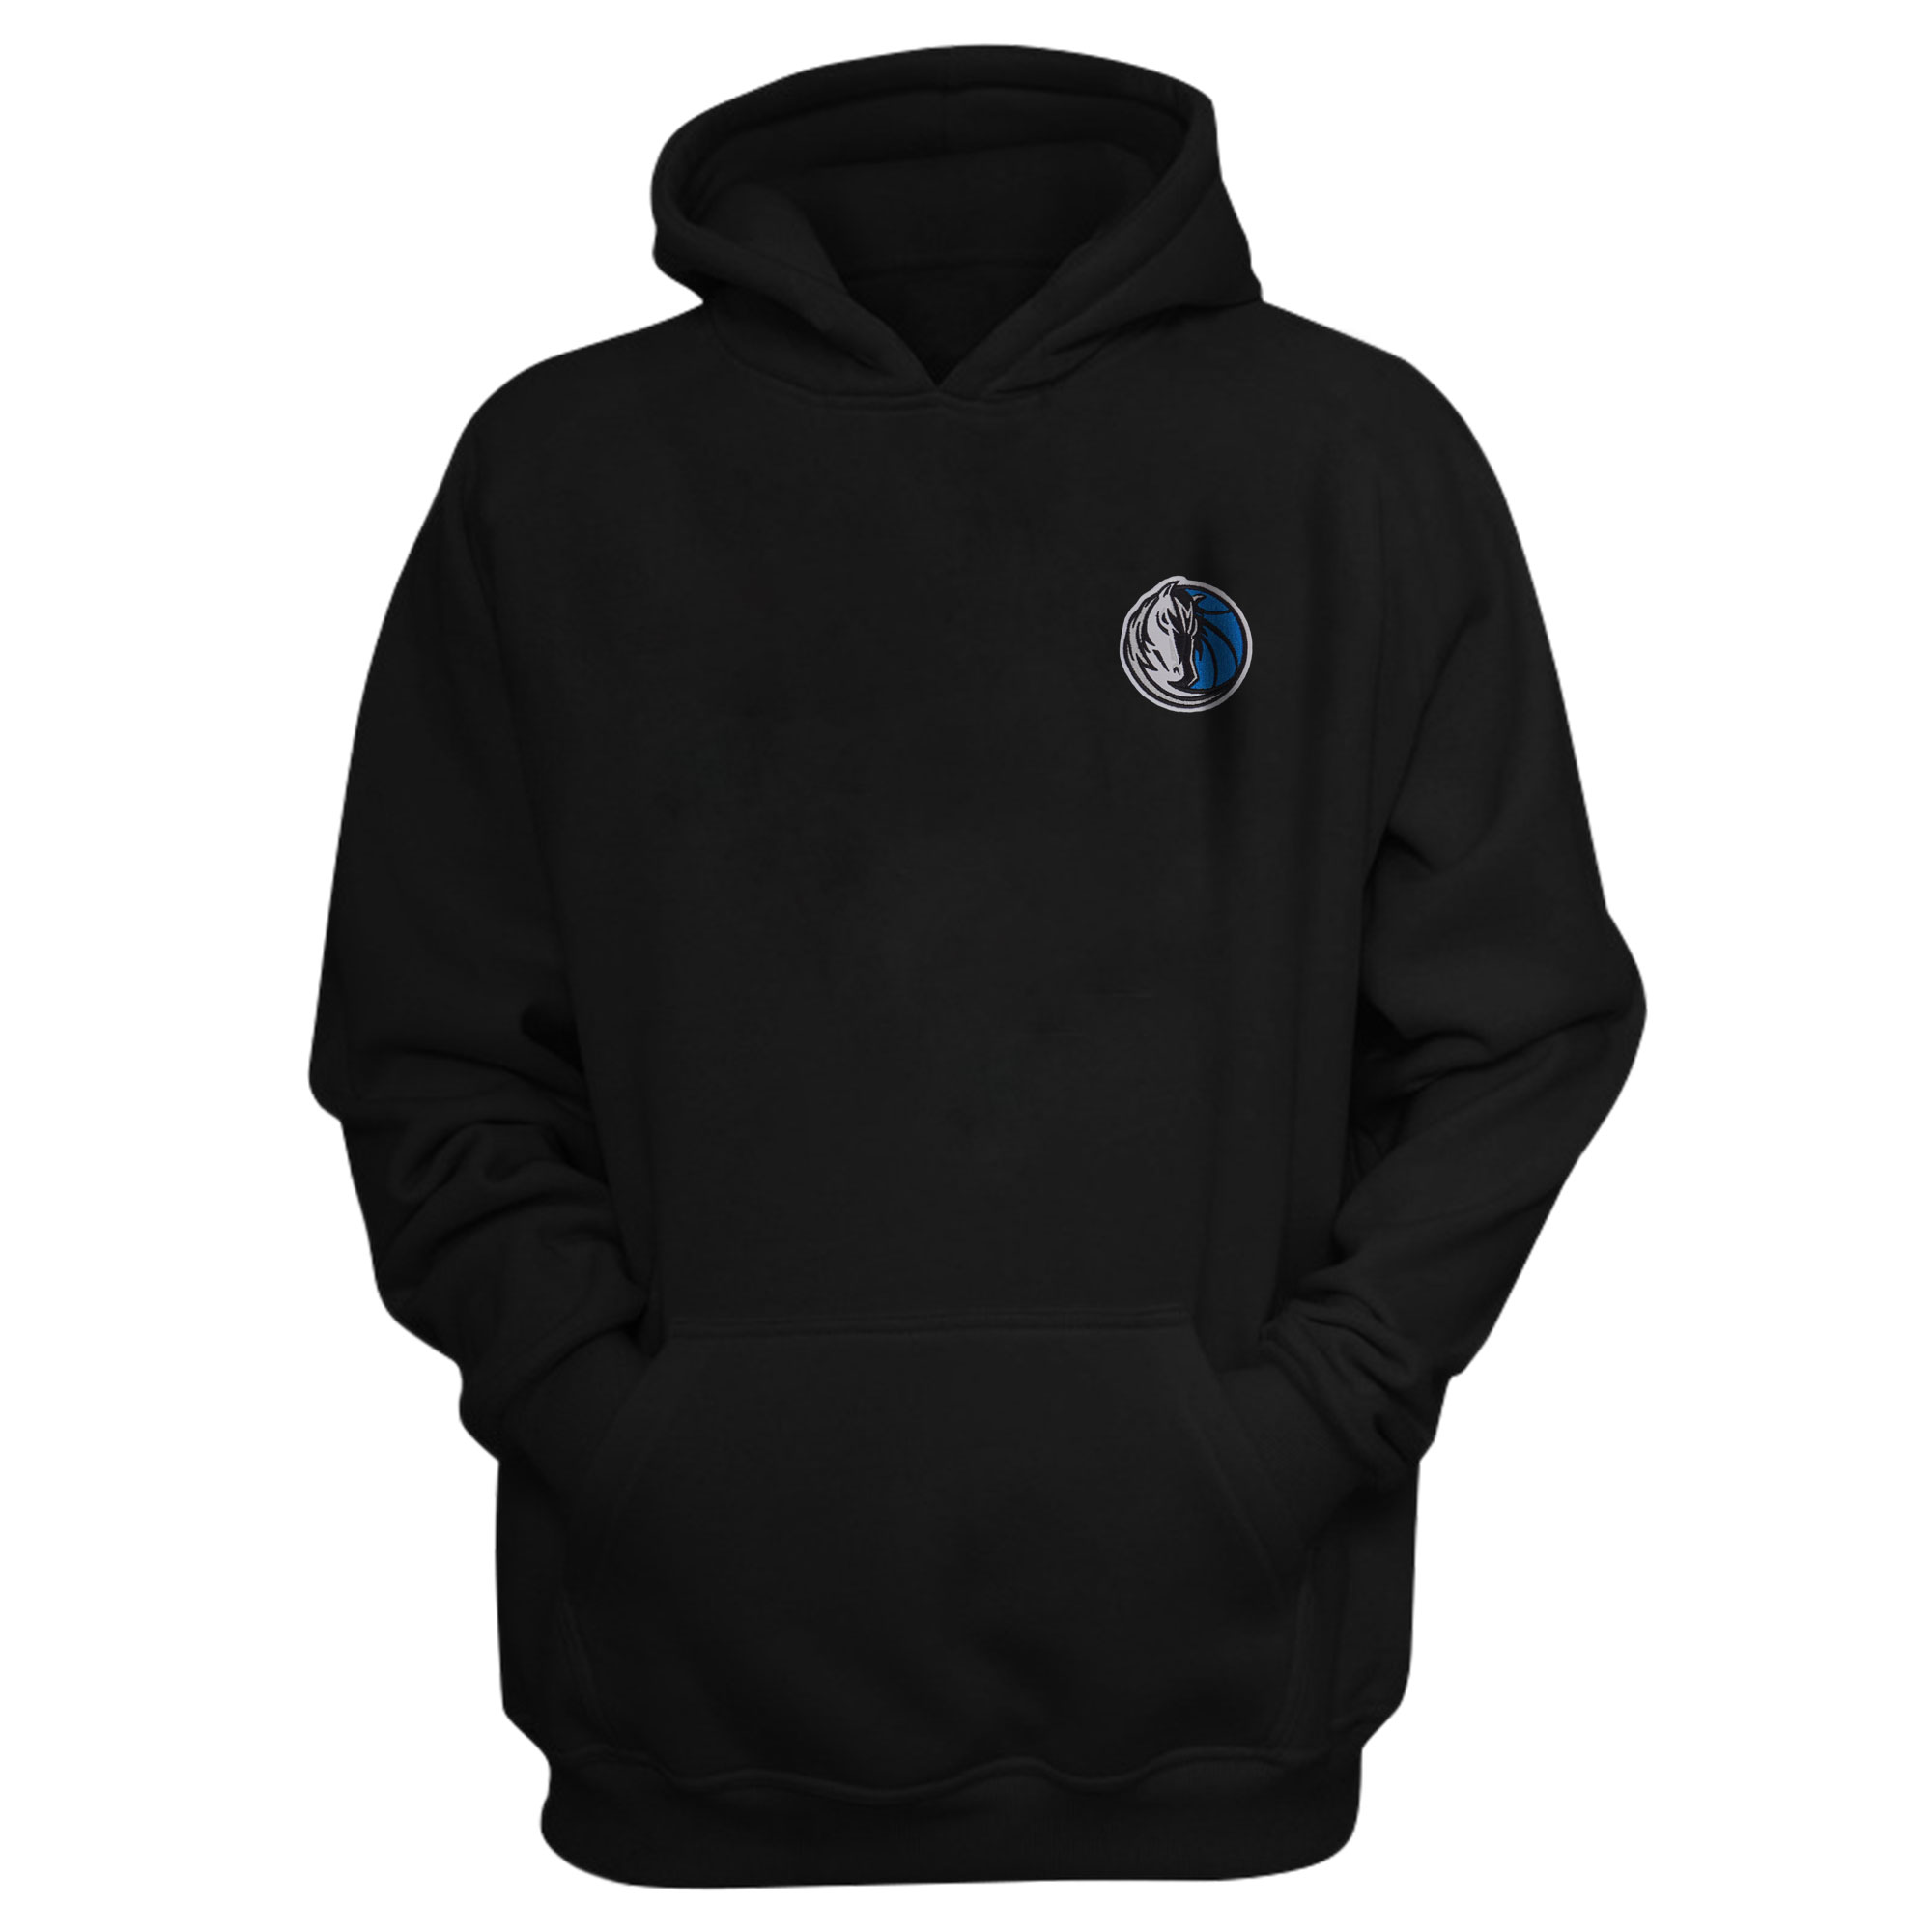 Dallas Mavericks Hoodie (Örme)  (HD-BLC-EMBR-DALLAS)